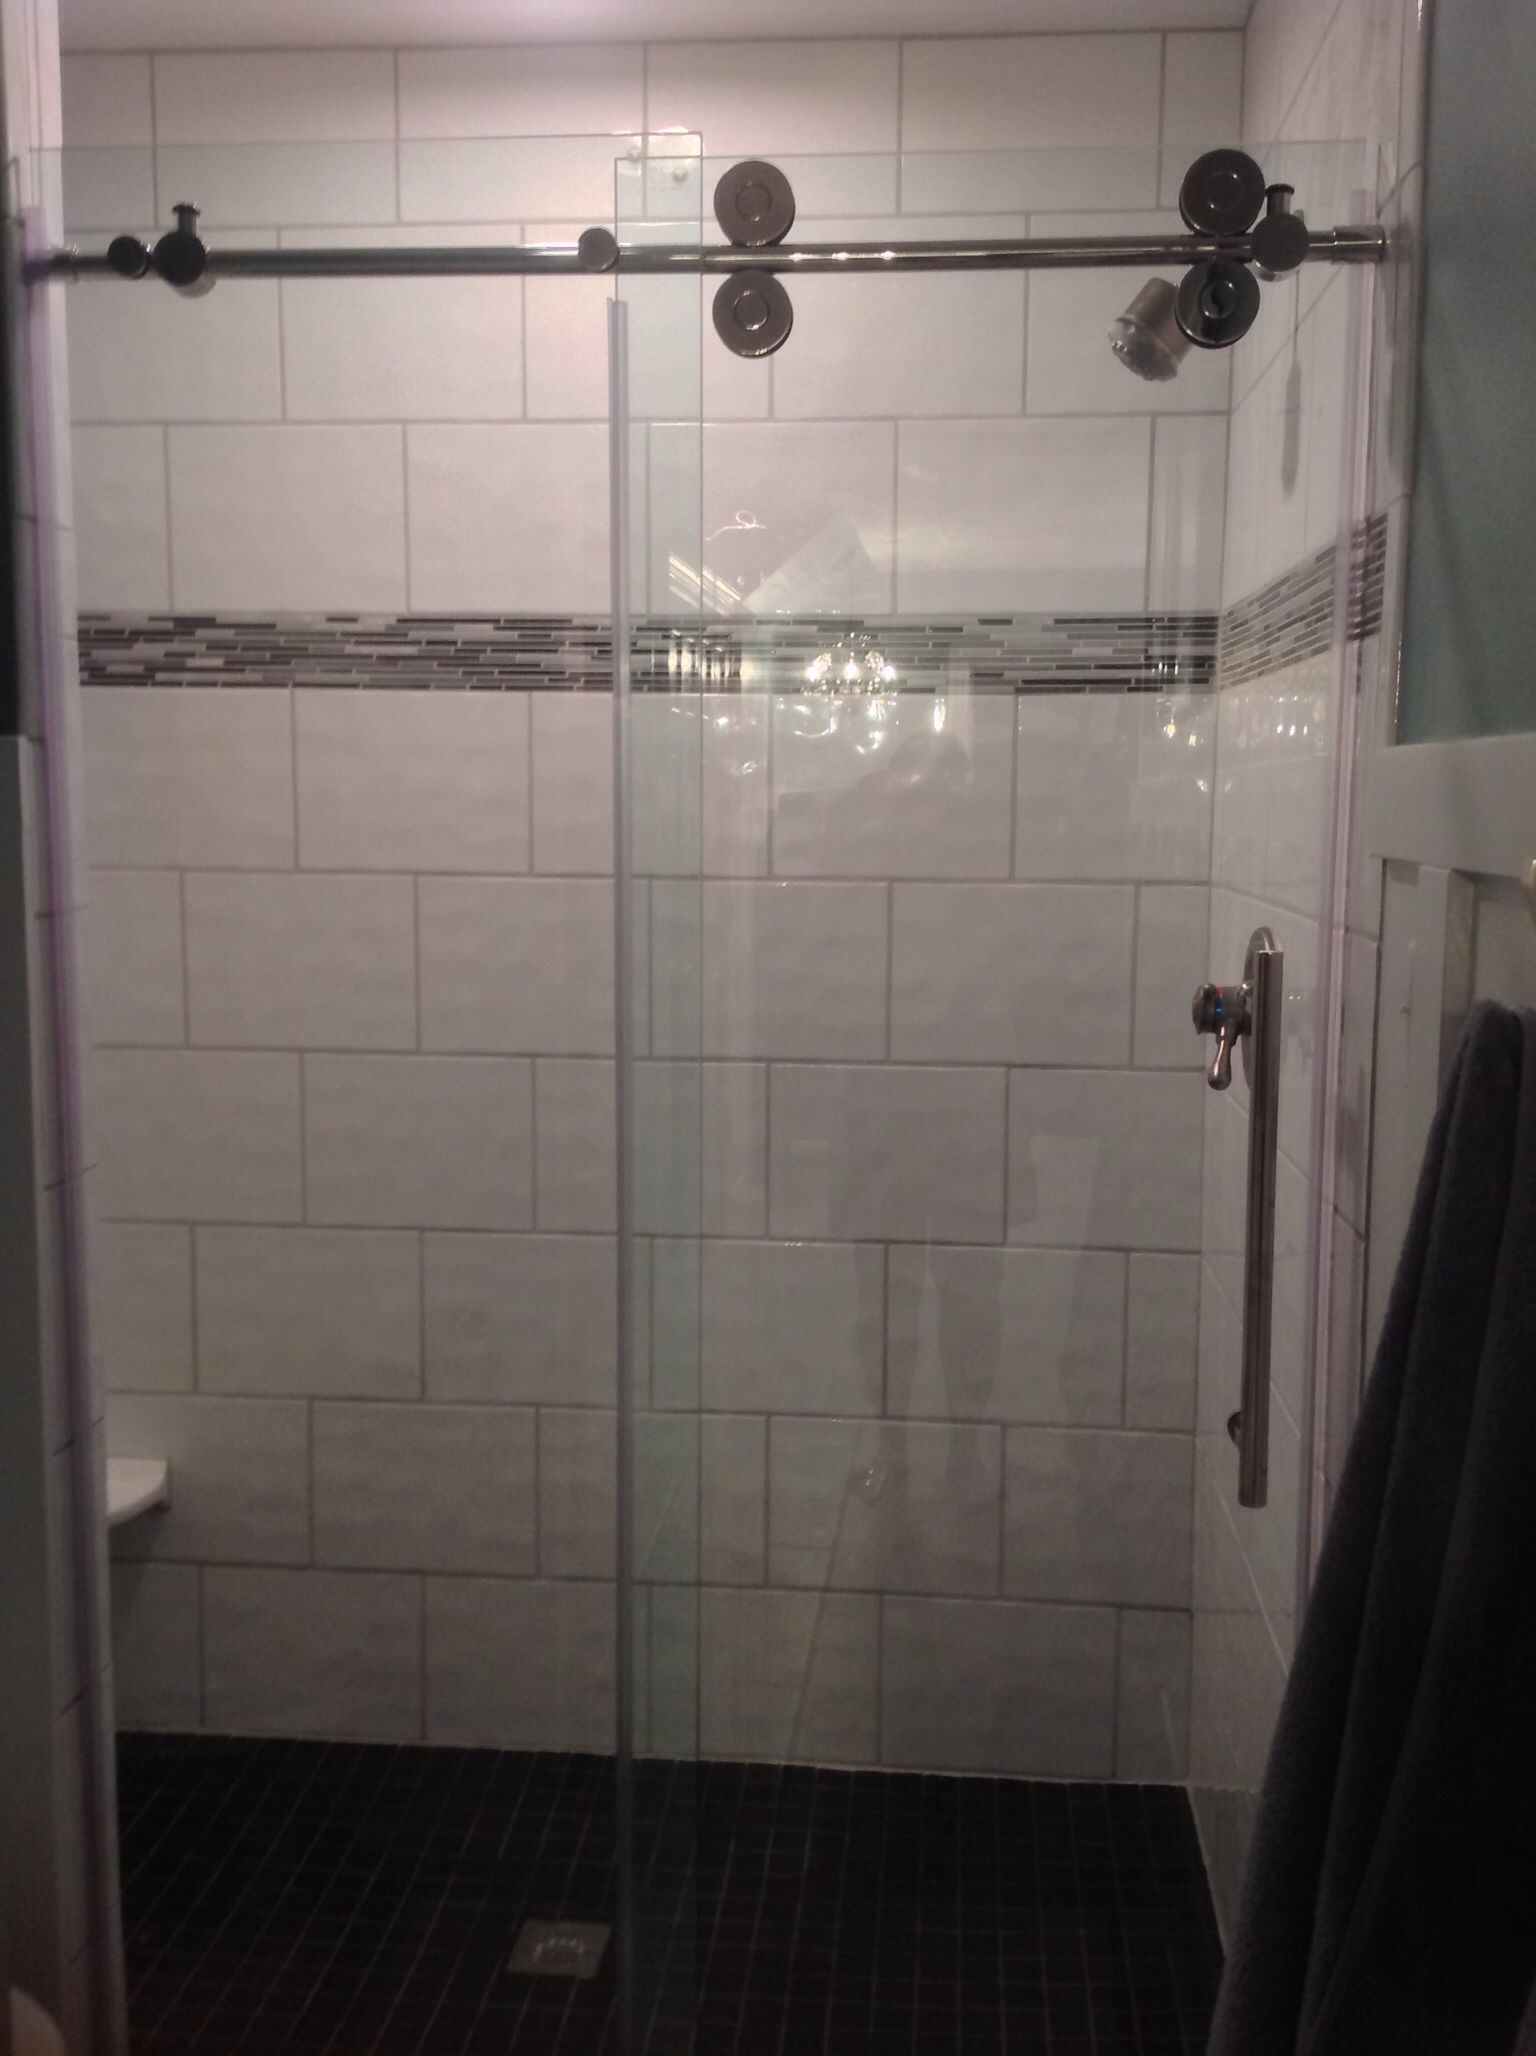 Removed Almond Cultured Marble Showeradded Wavy White Rectangular Tile In A Subway Pattern